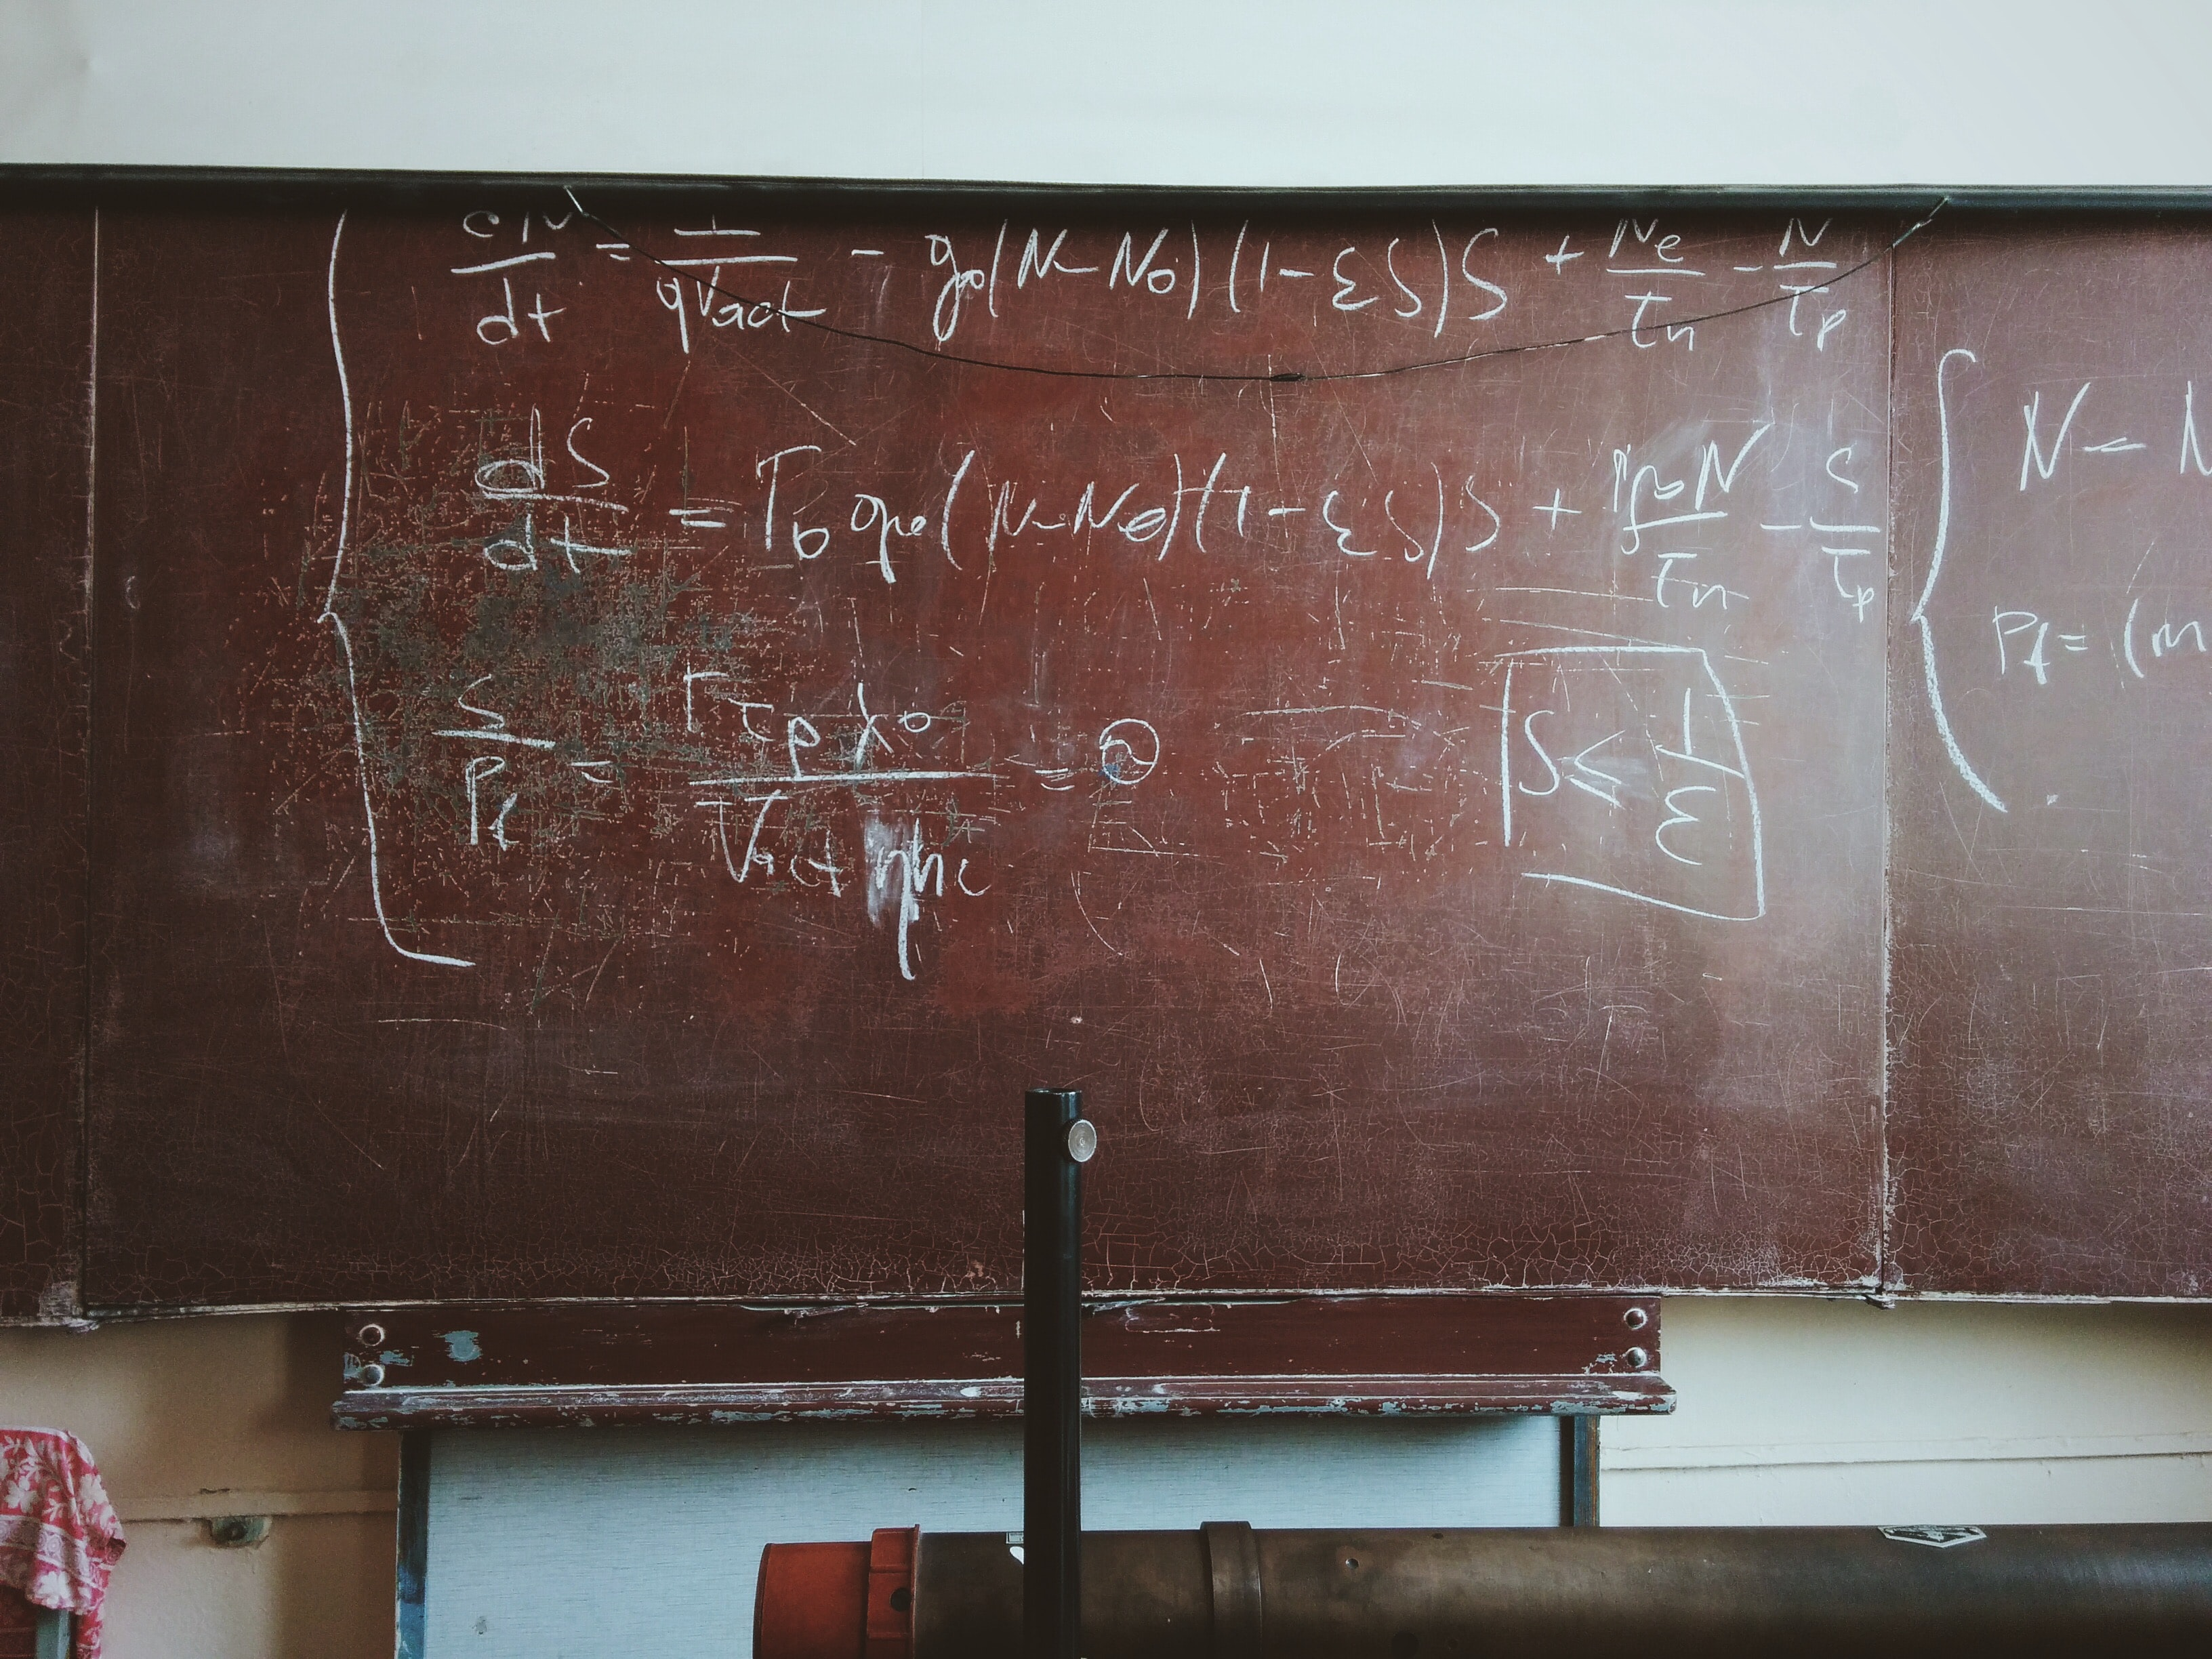 Equations written in chalk on a worn-out blackboard